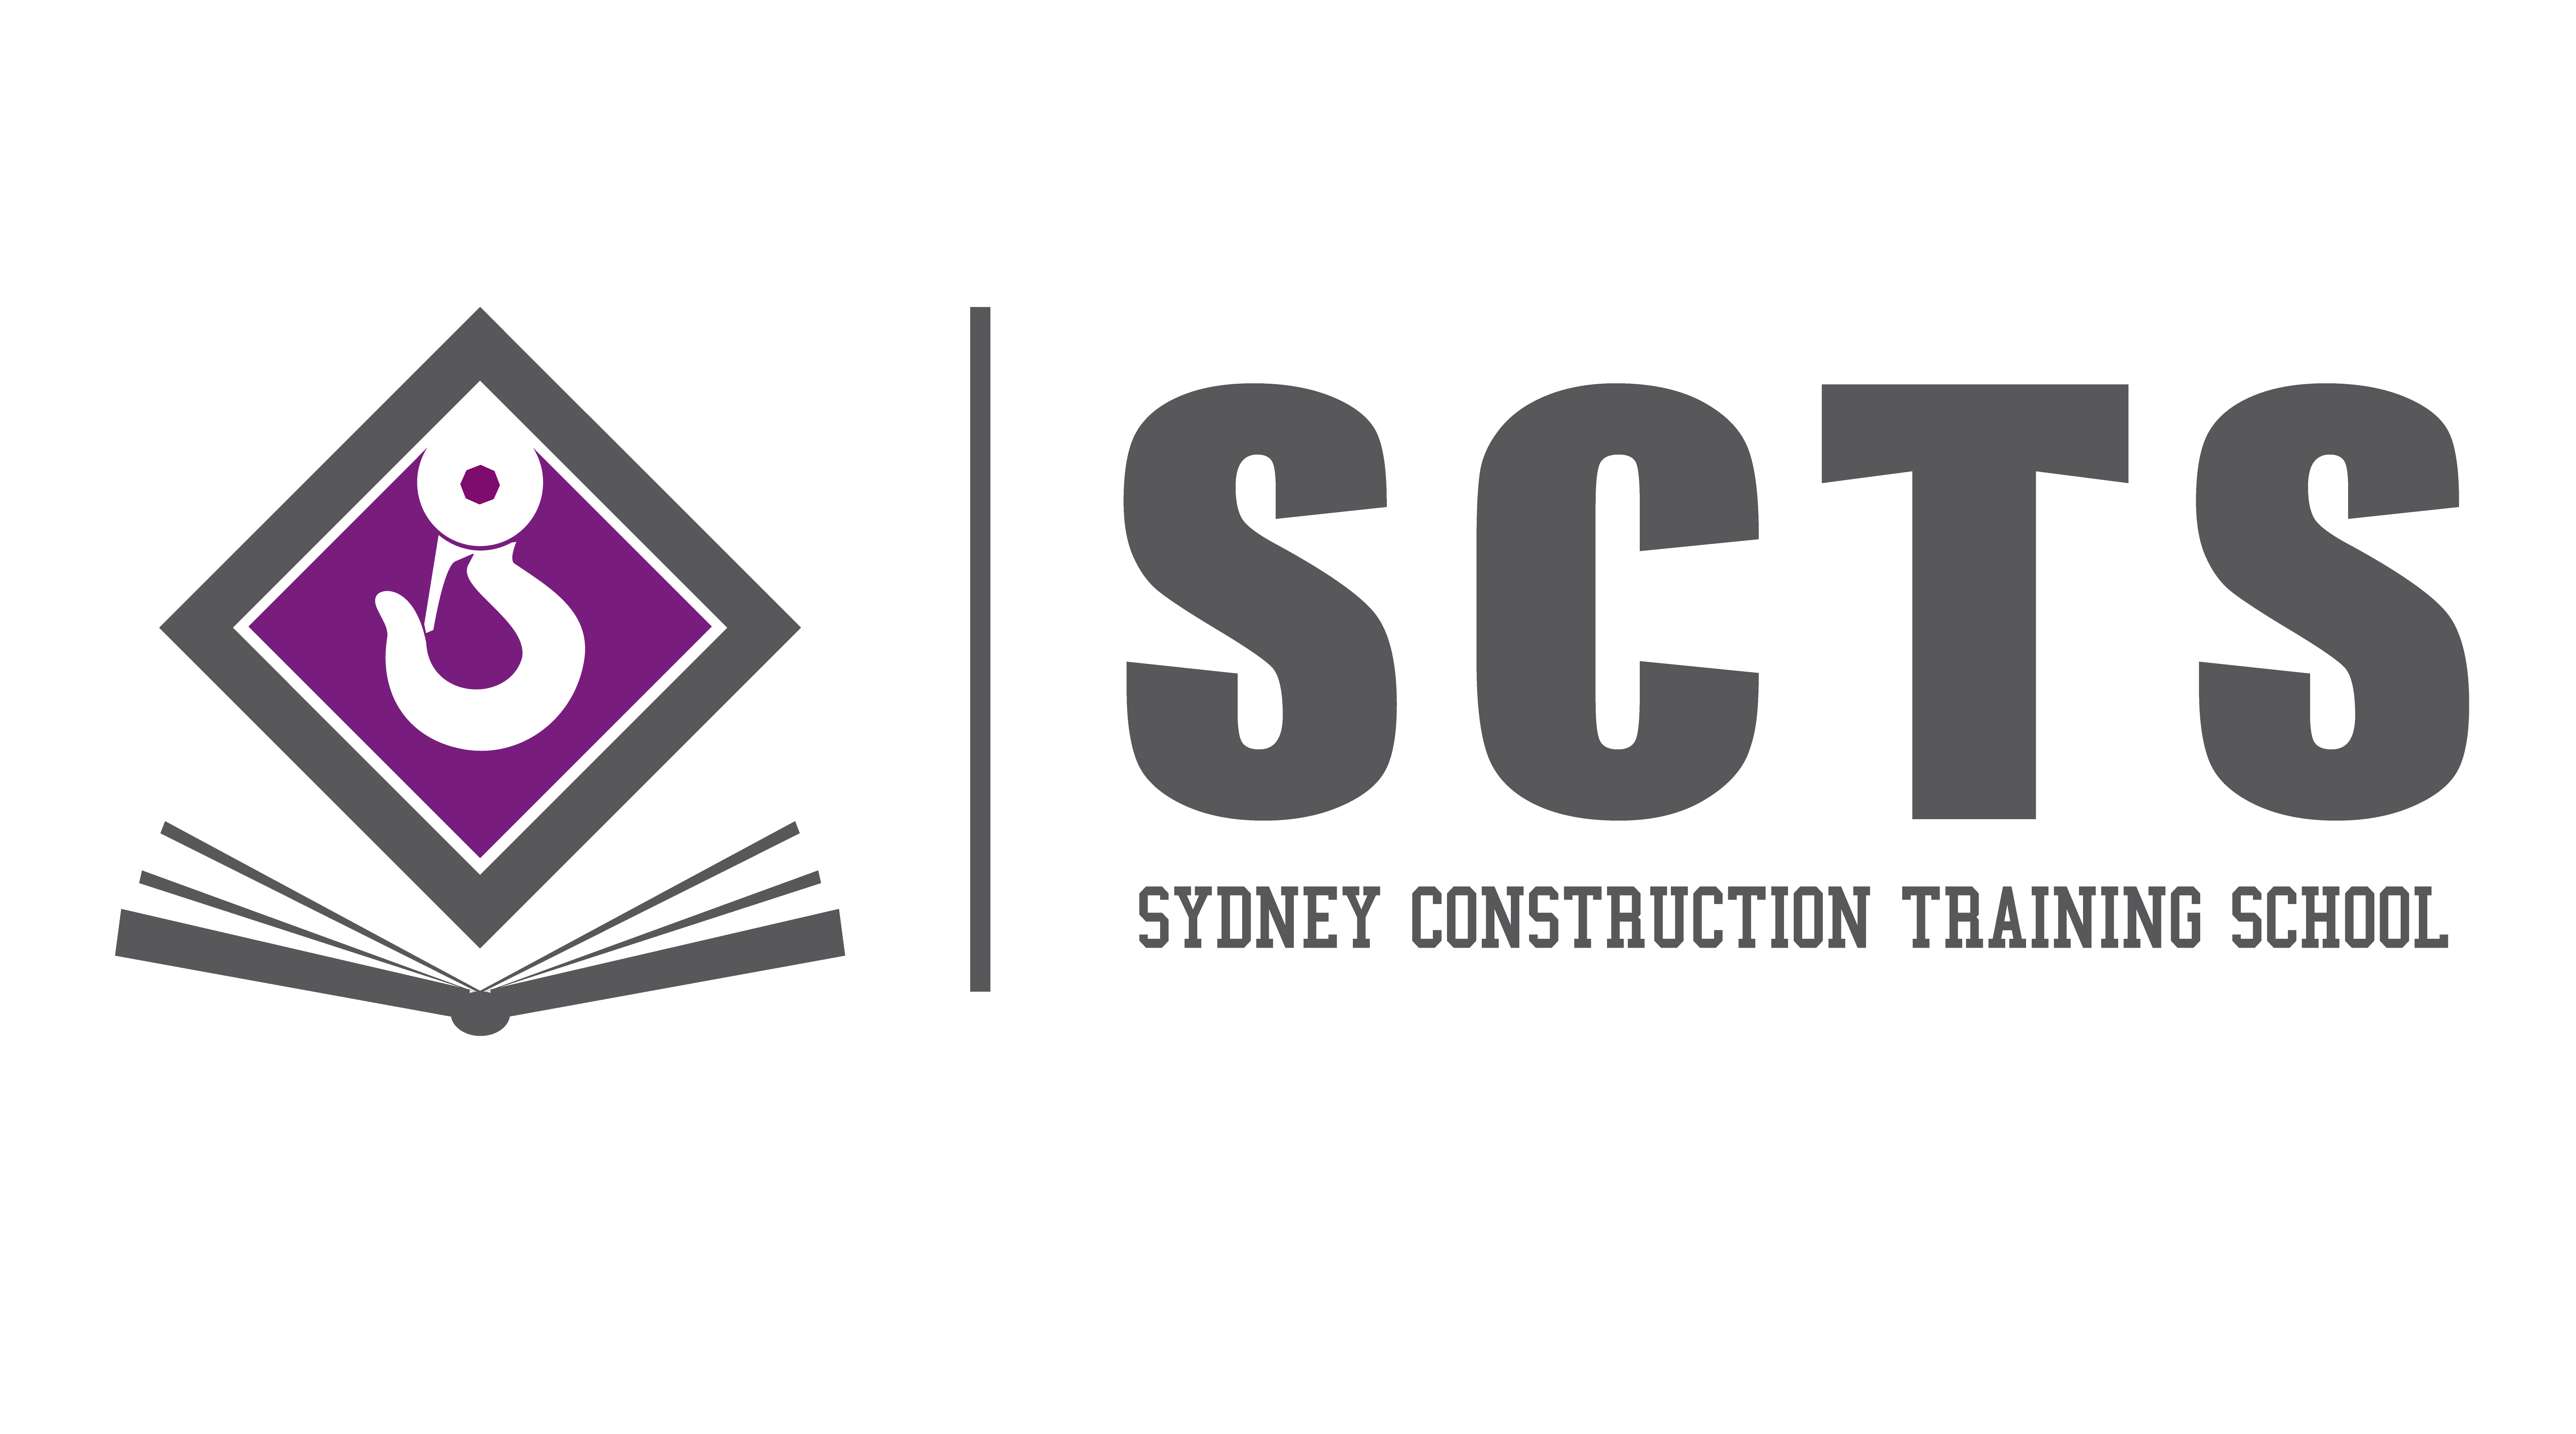 Sydney Construction Training School Pty Ltd